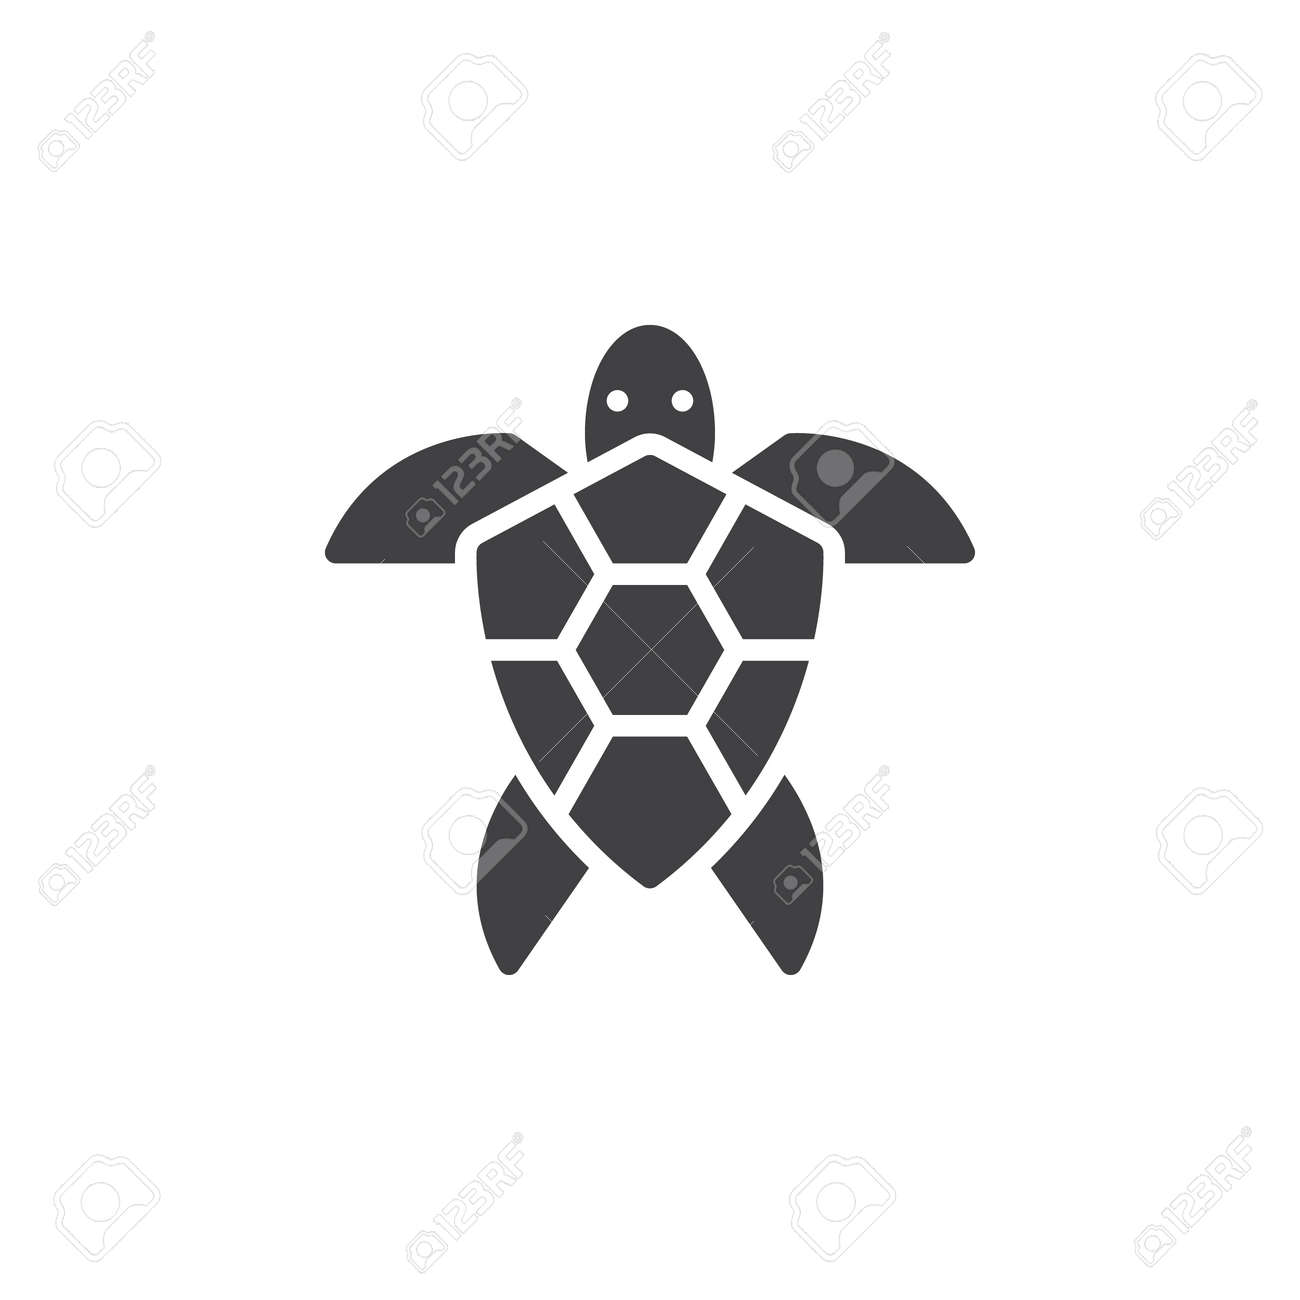 sea turtle icon vector filled flat sign solid pictogram isolated rh 123rf com Sea Turtle SVG Colorful Sea Turtles